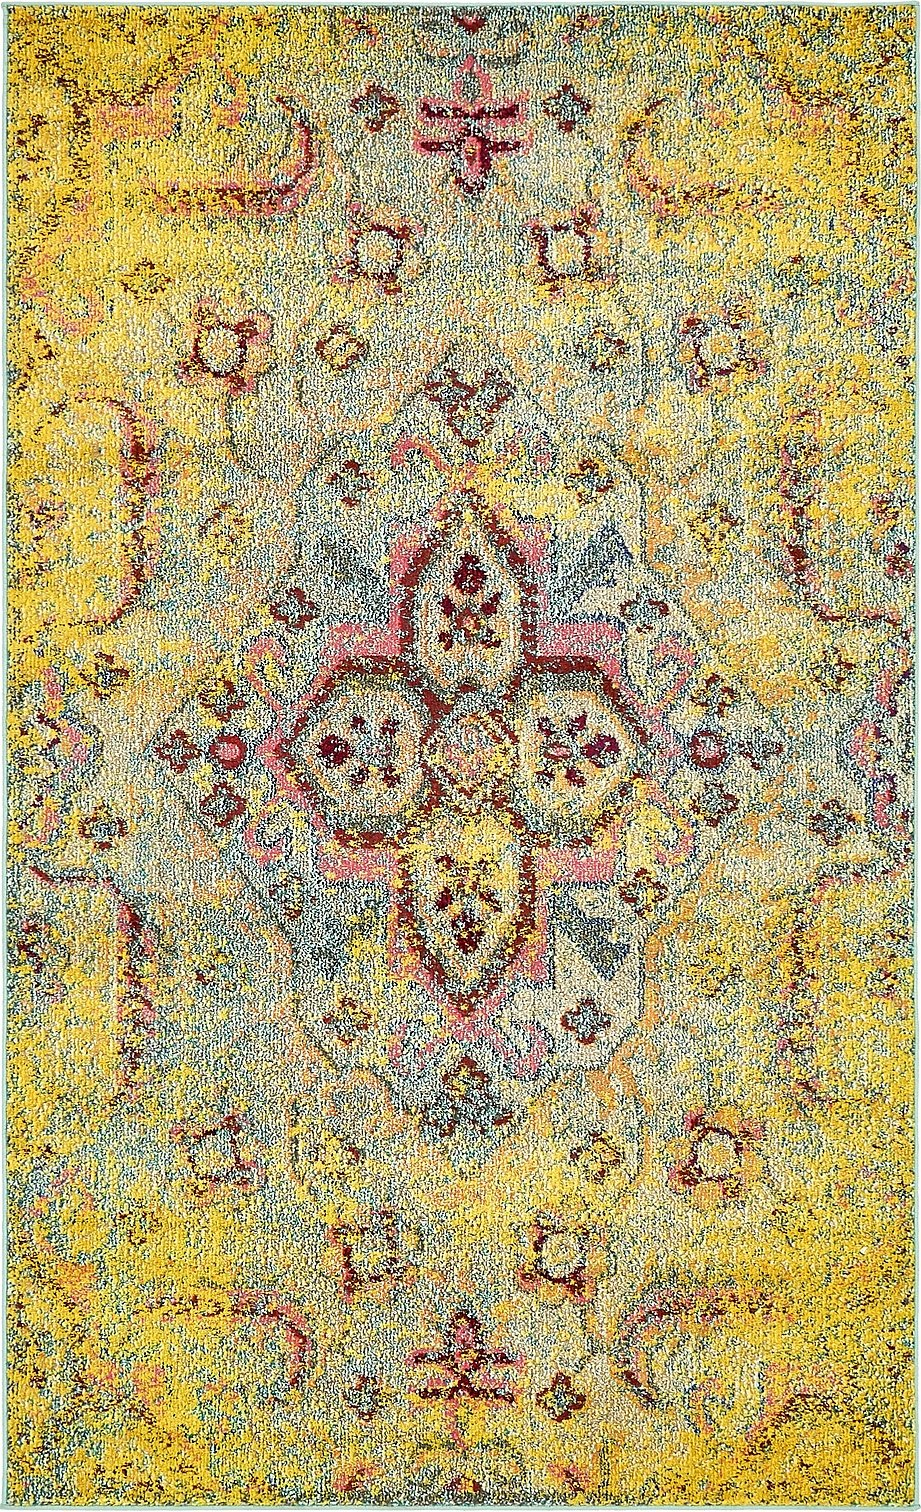 A2Z Rug Modern Contemporary & Traditional Design Rugs, Yellow 5' x 8'-Feet Milano Collection Area rug